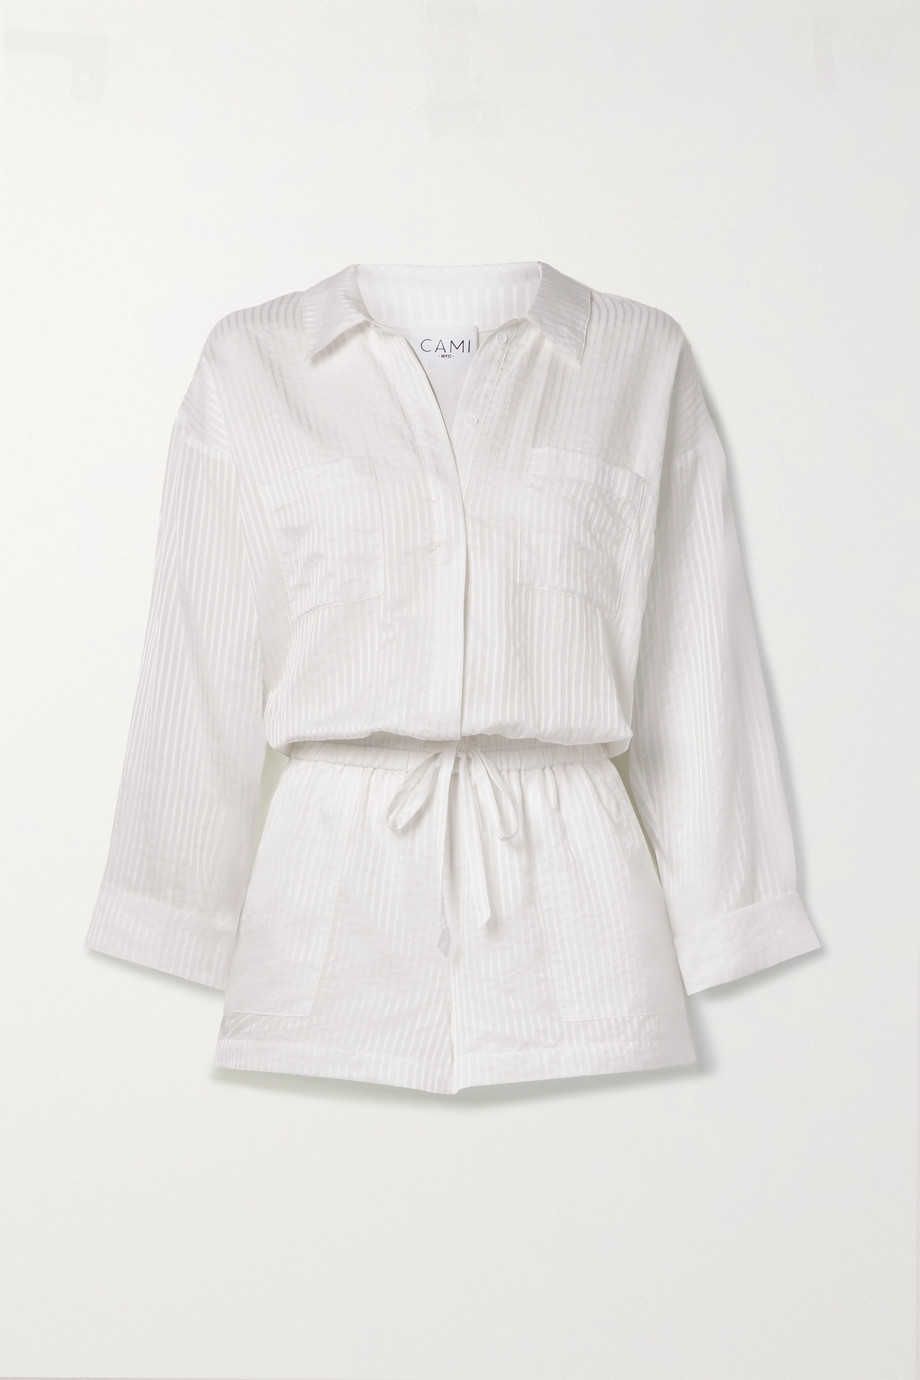 Cami NYC Constanse cotton and silk-blend jacquard playsuit